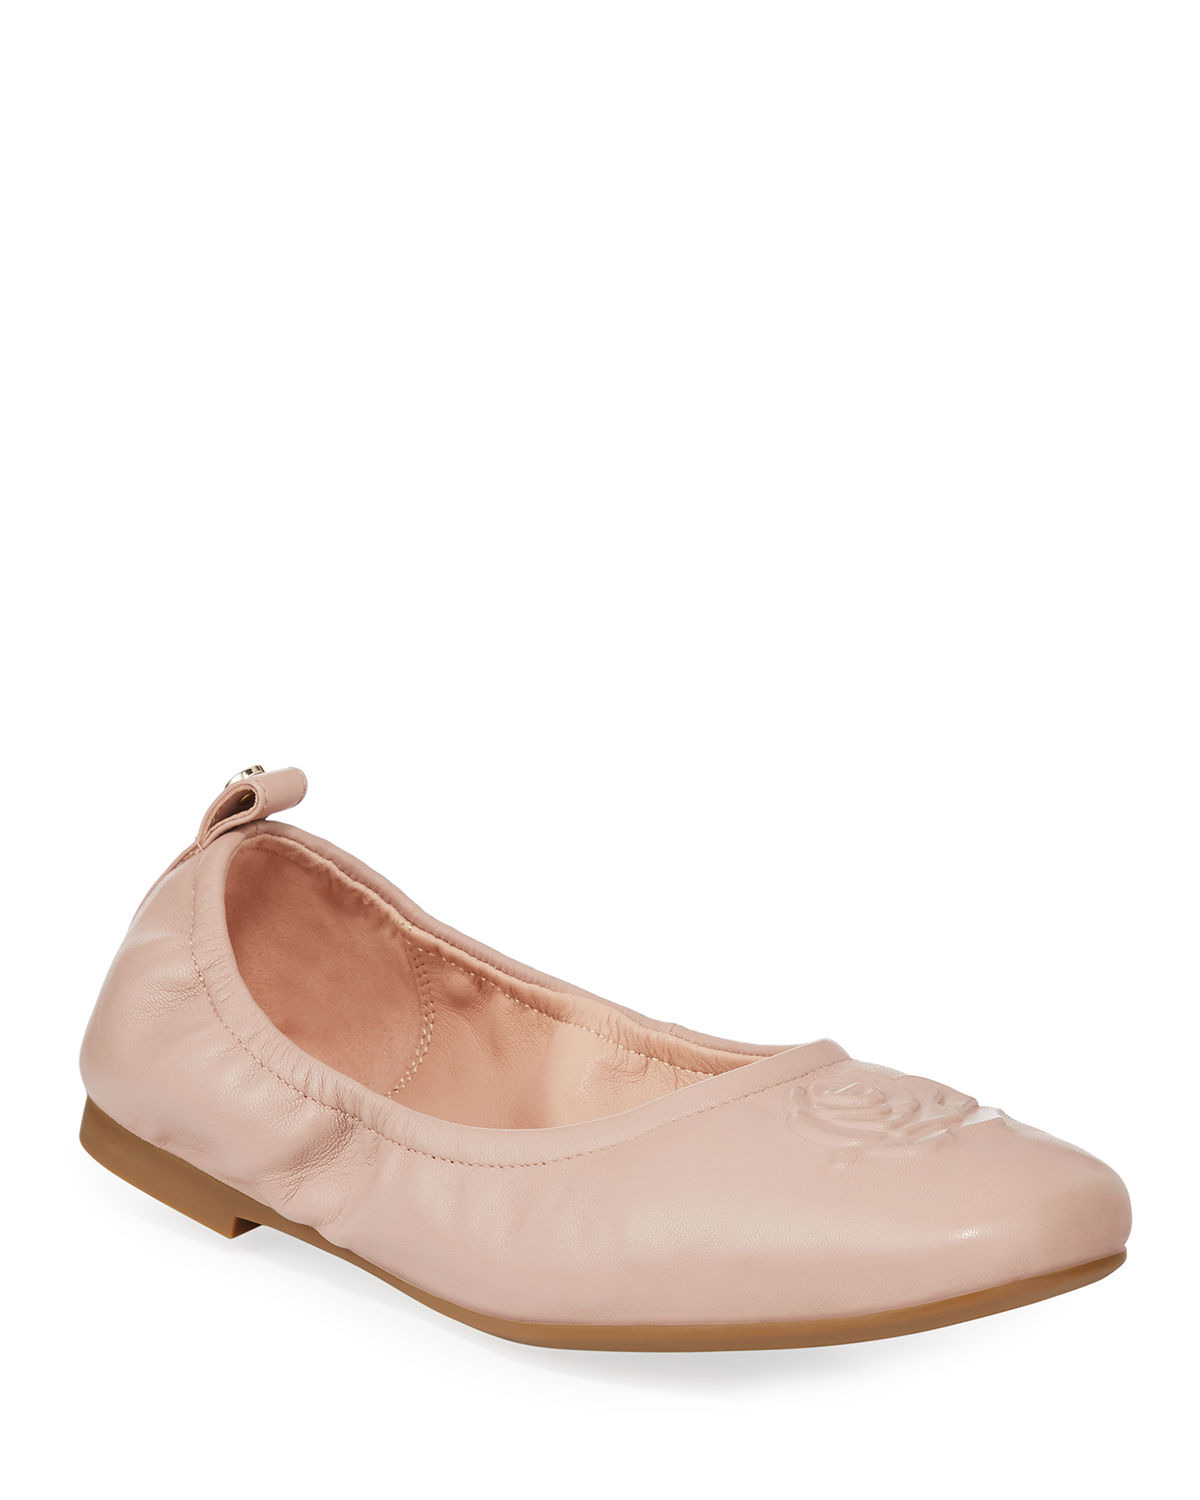 Taryn Rose Flats RAQUEL ROSE WEATHERPROOF LEATHER BALLET FLATS